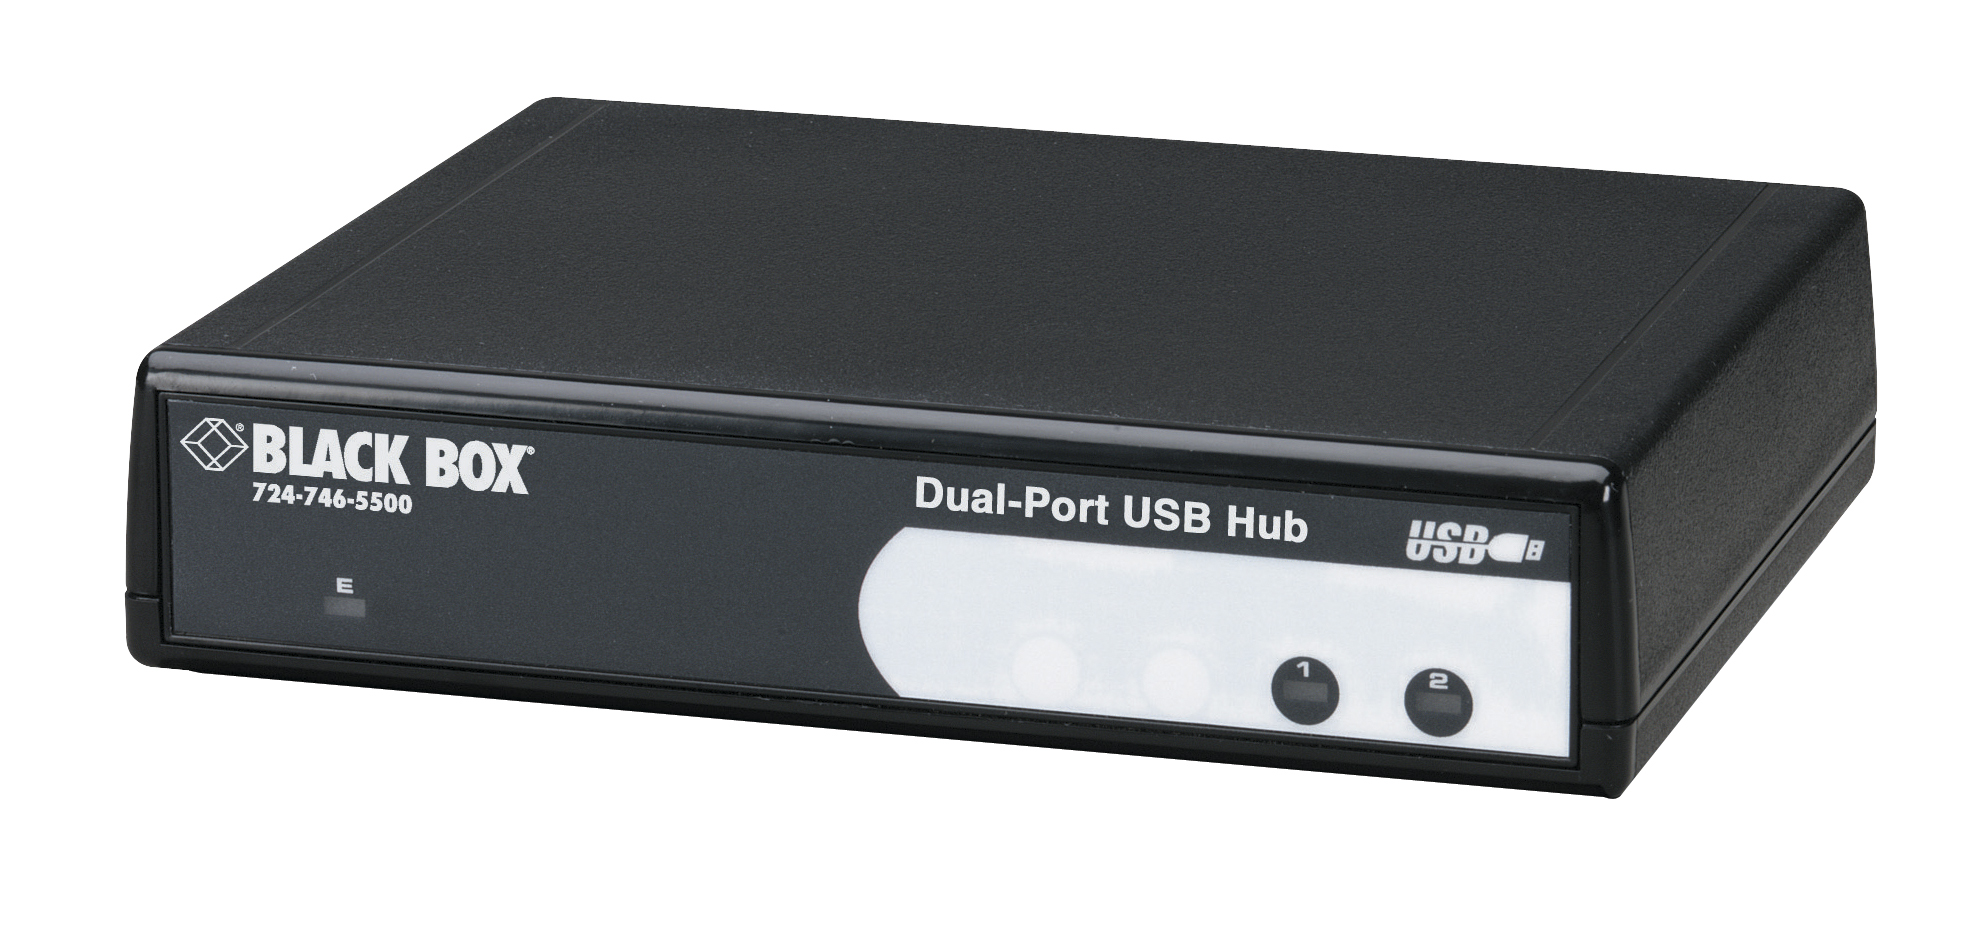 2 Port Usb To Rs232 Rs422 485 Converter Db9 Black Box Power A Distant Hub Using Only The Cable 4 Ic1020a